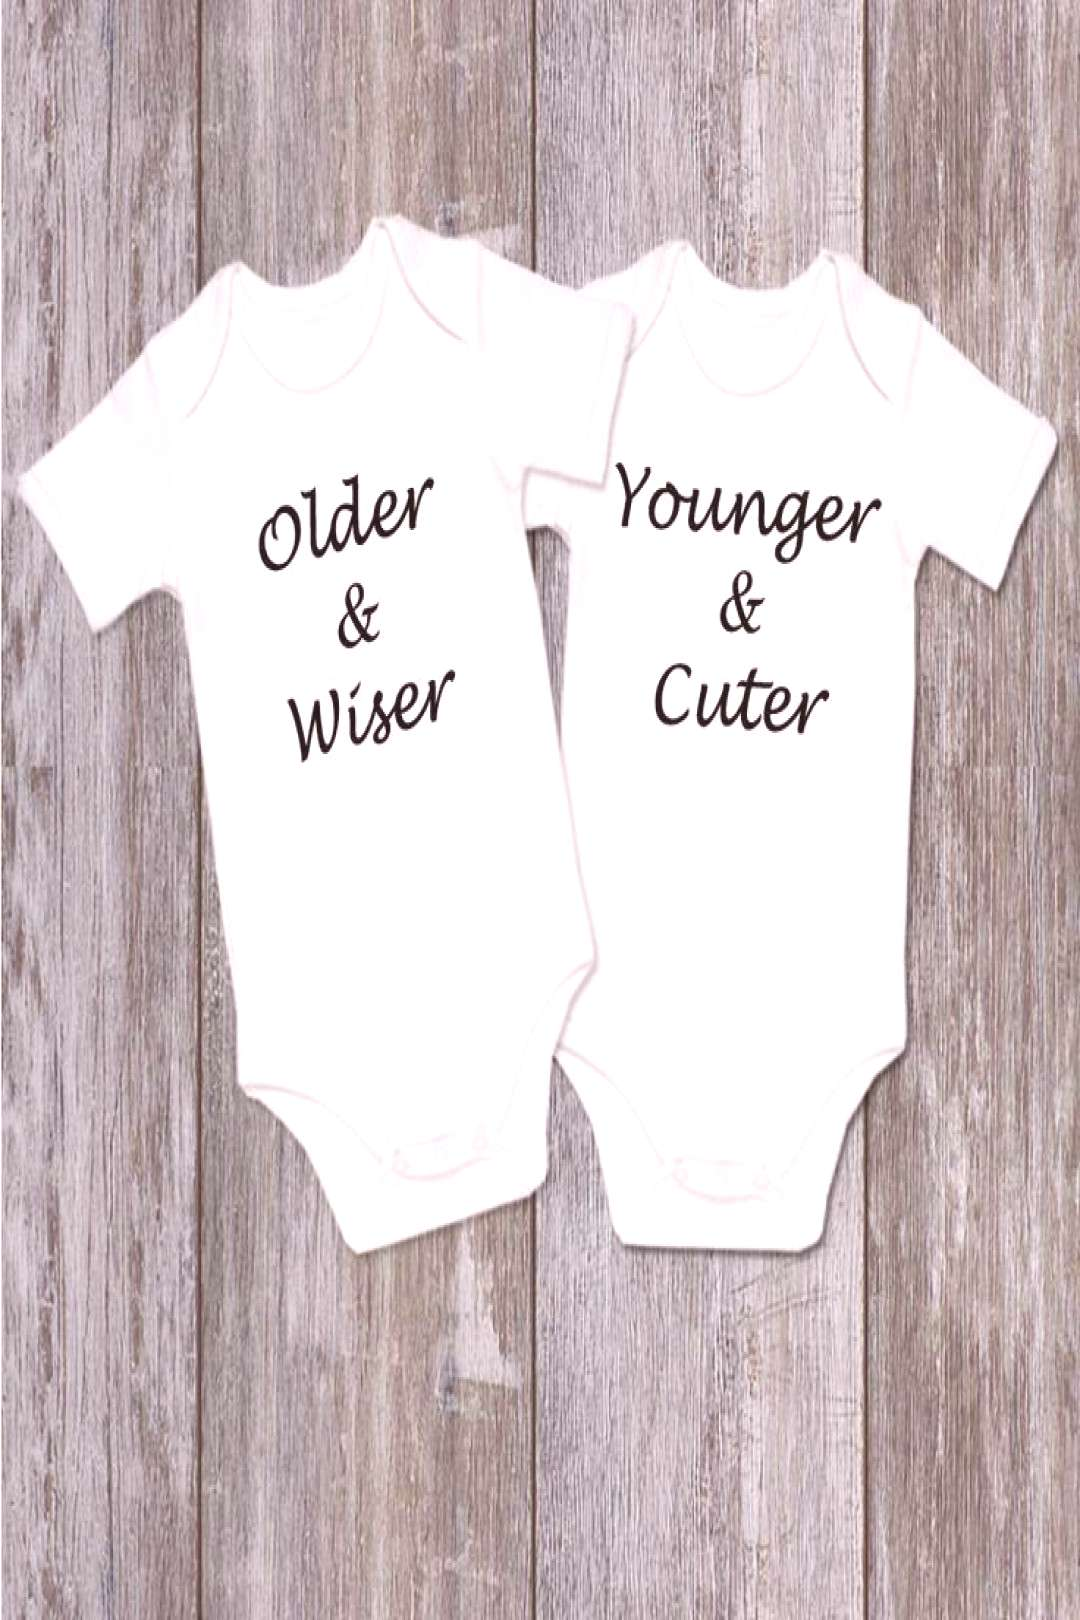 Twin onesies Matching bodysuits Twin outfits Twin clothing Twin boys Twins baby gifts Twin babies T